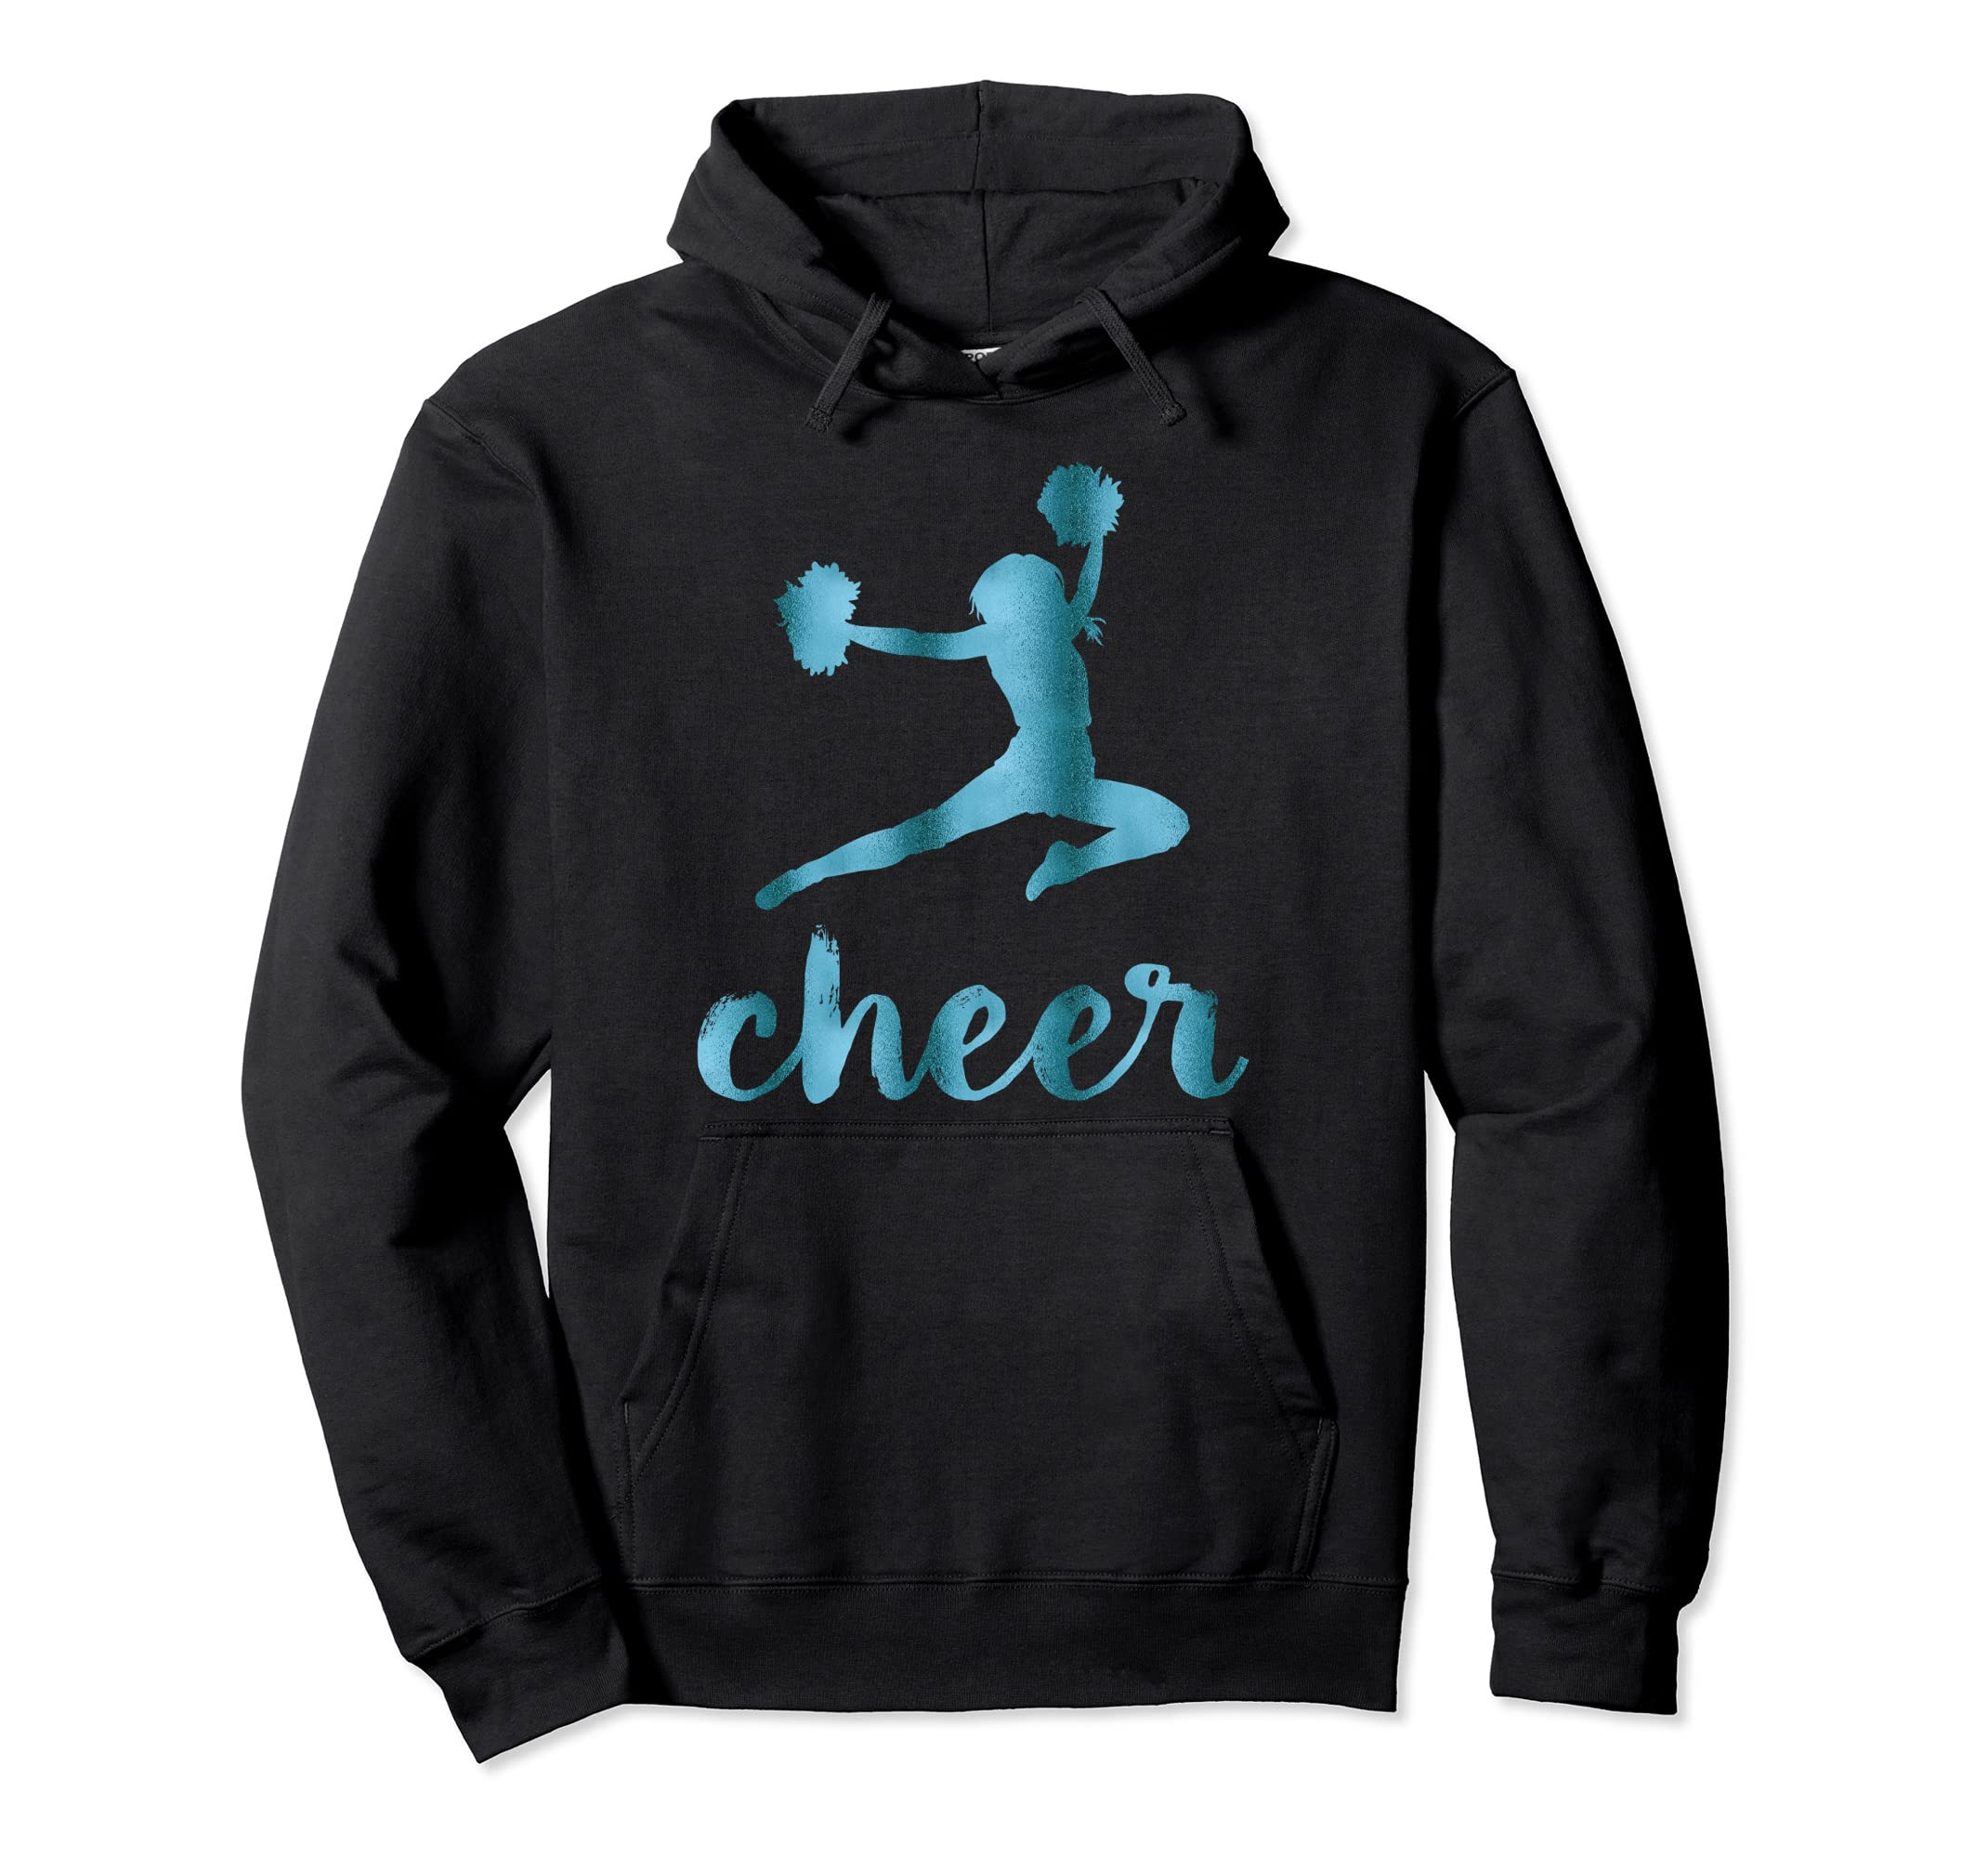 Cheerleading Hoodies With Cheer Graphics Teal